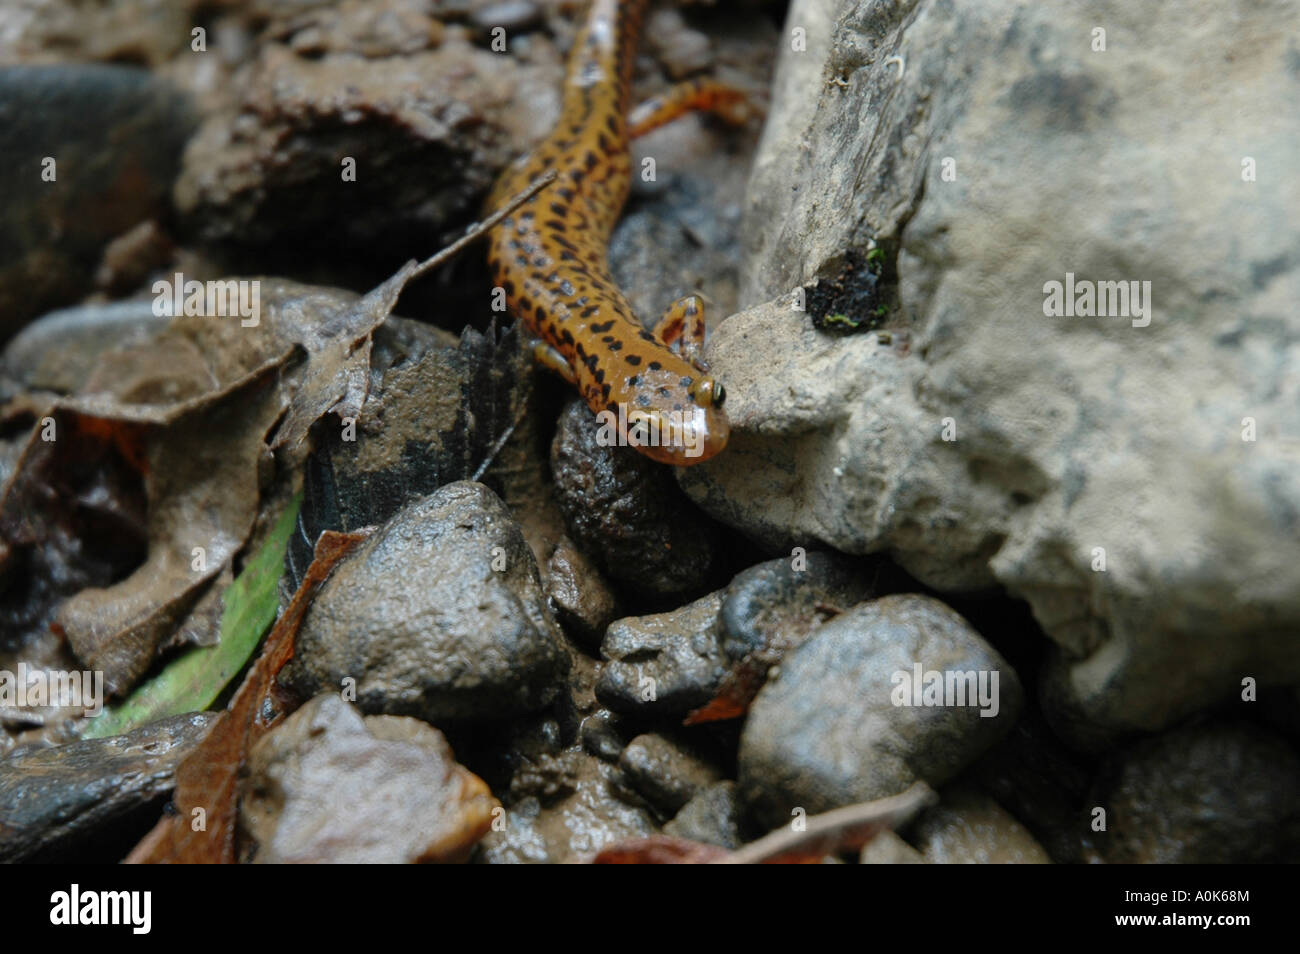 P31 308 Salamander Near Little Pigeon River Tennessee close - Stock Image